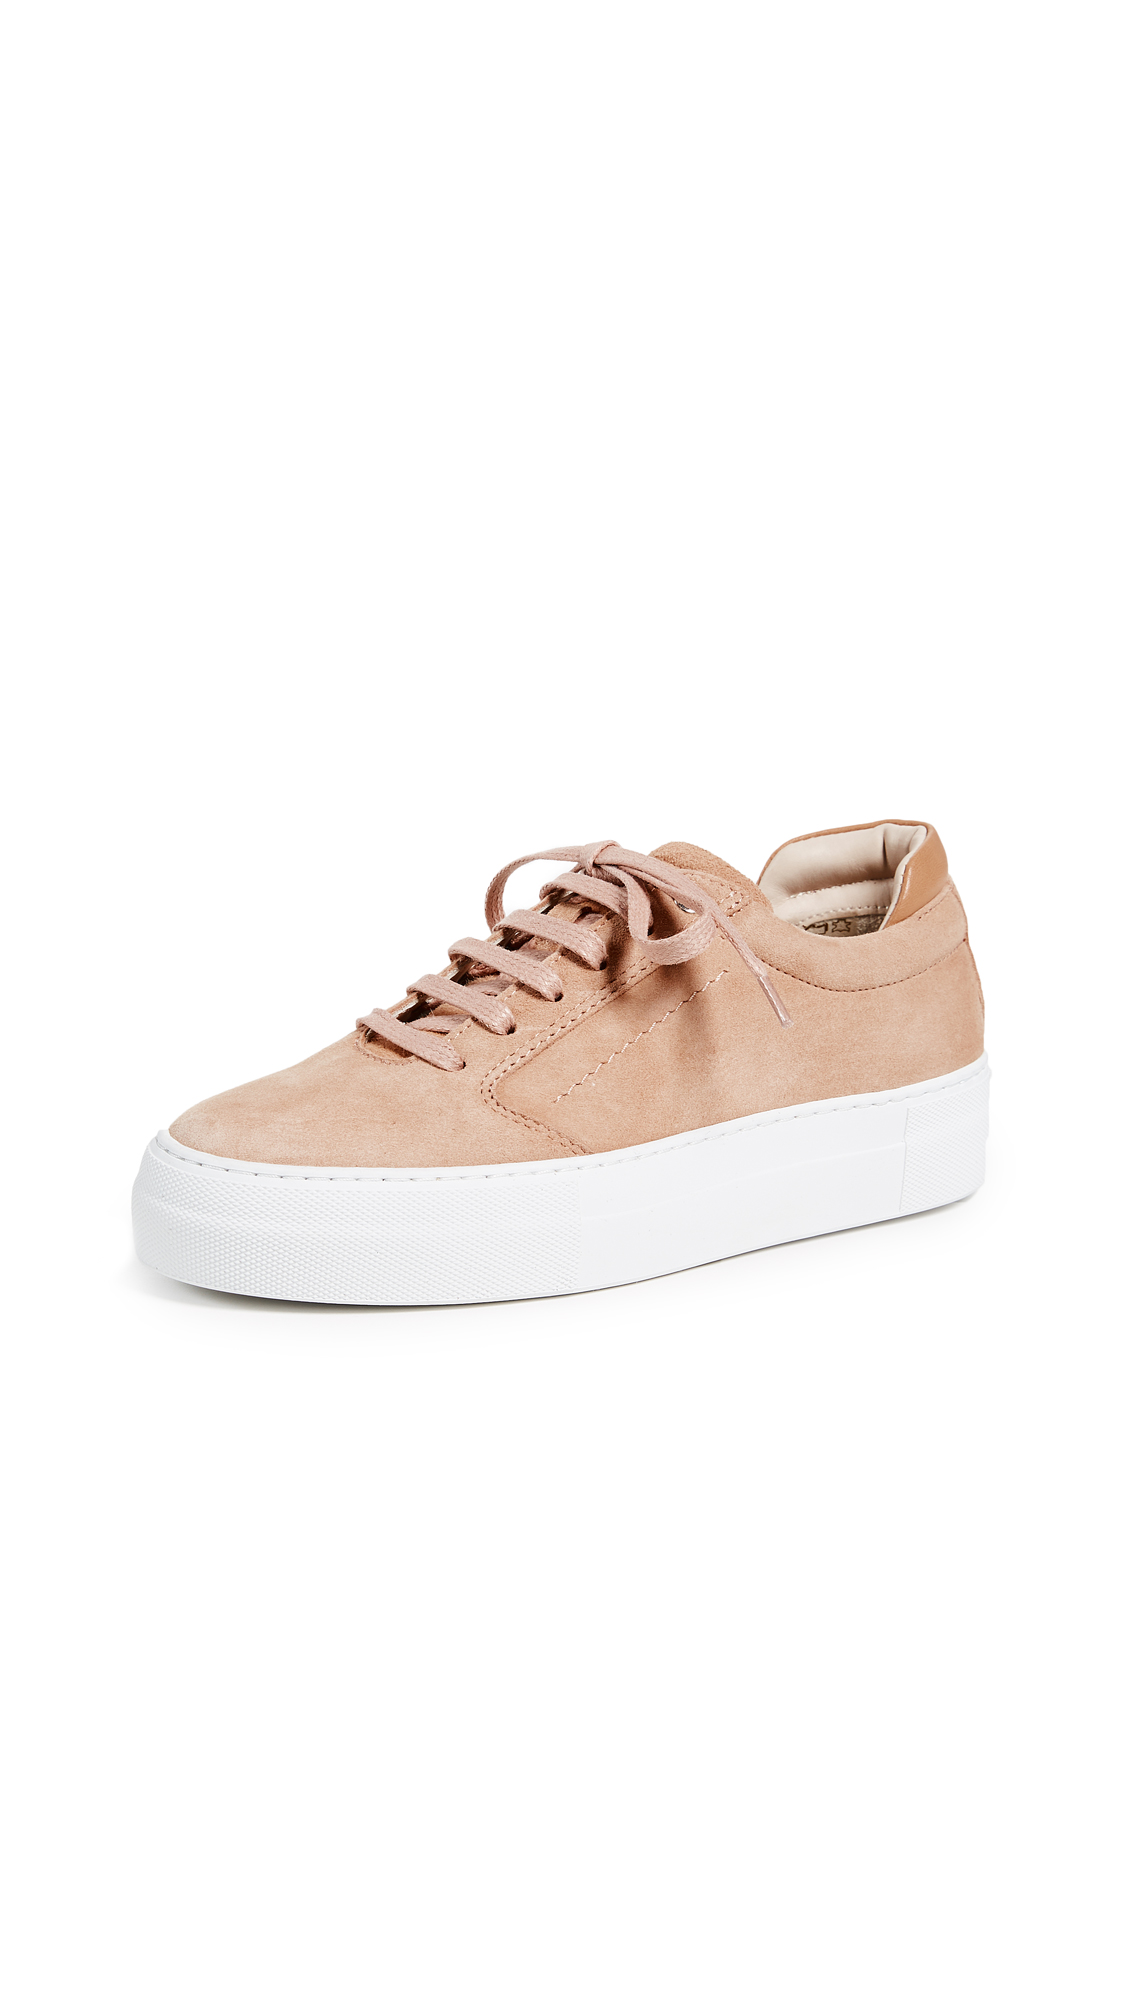 WANT LES ESSENTIELS Lalibela Sneakers - Sirocco/Sirocco